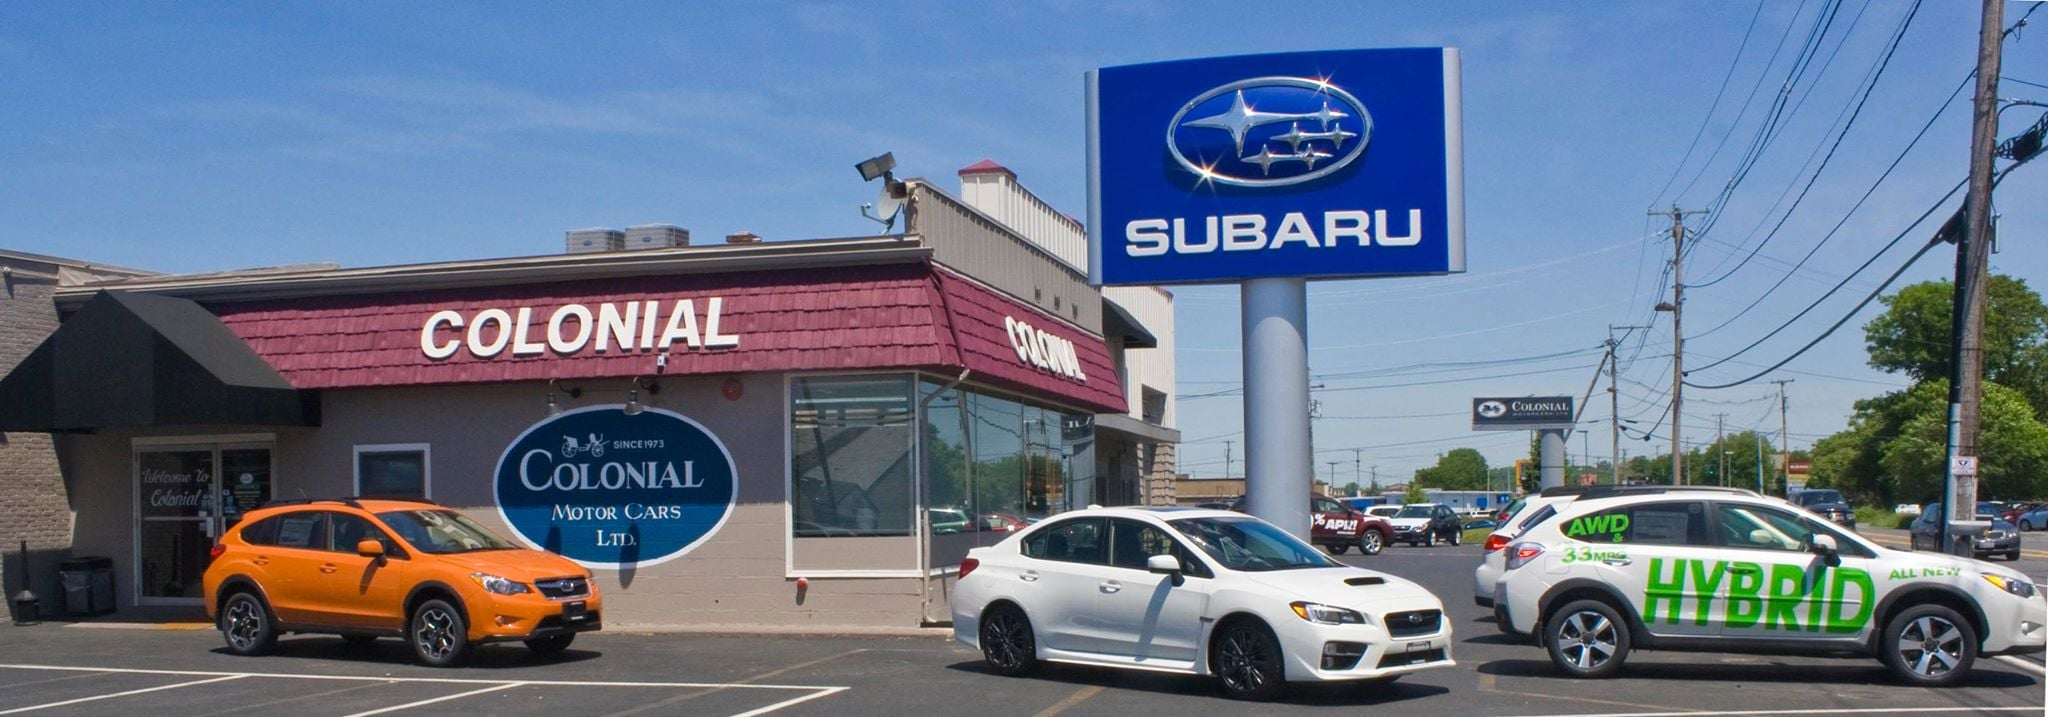 Colonial Subaru in Kingston, NY - New and Used Subaru Dealership